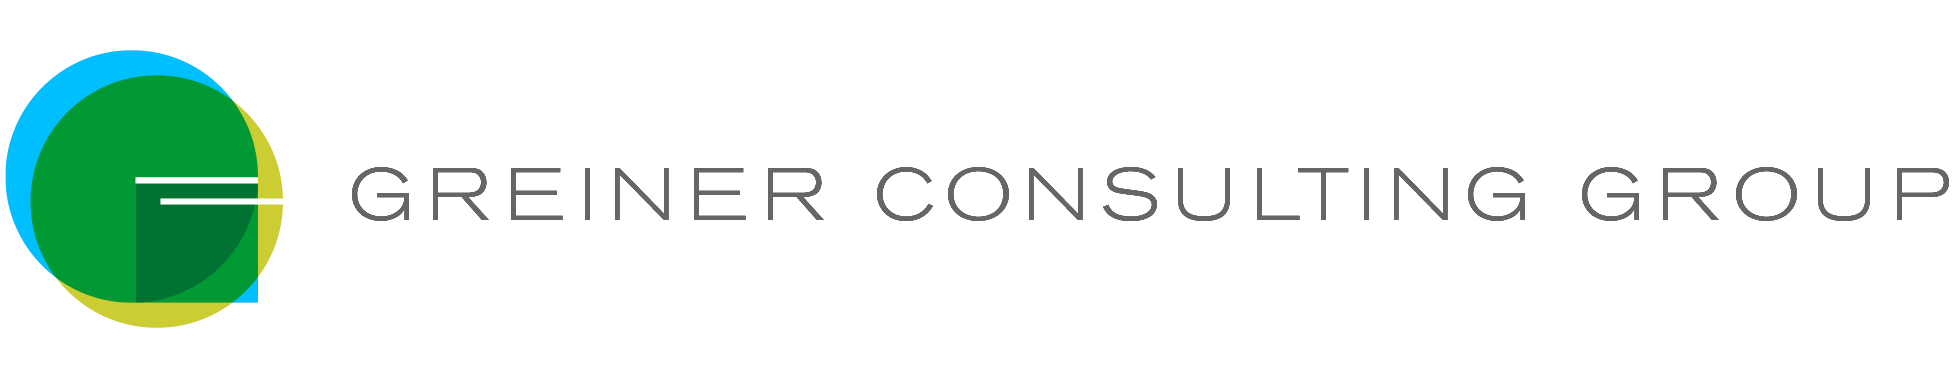 Greiner Consulting Group